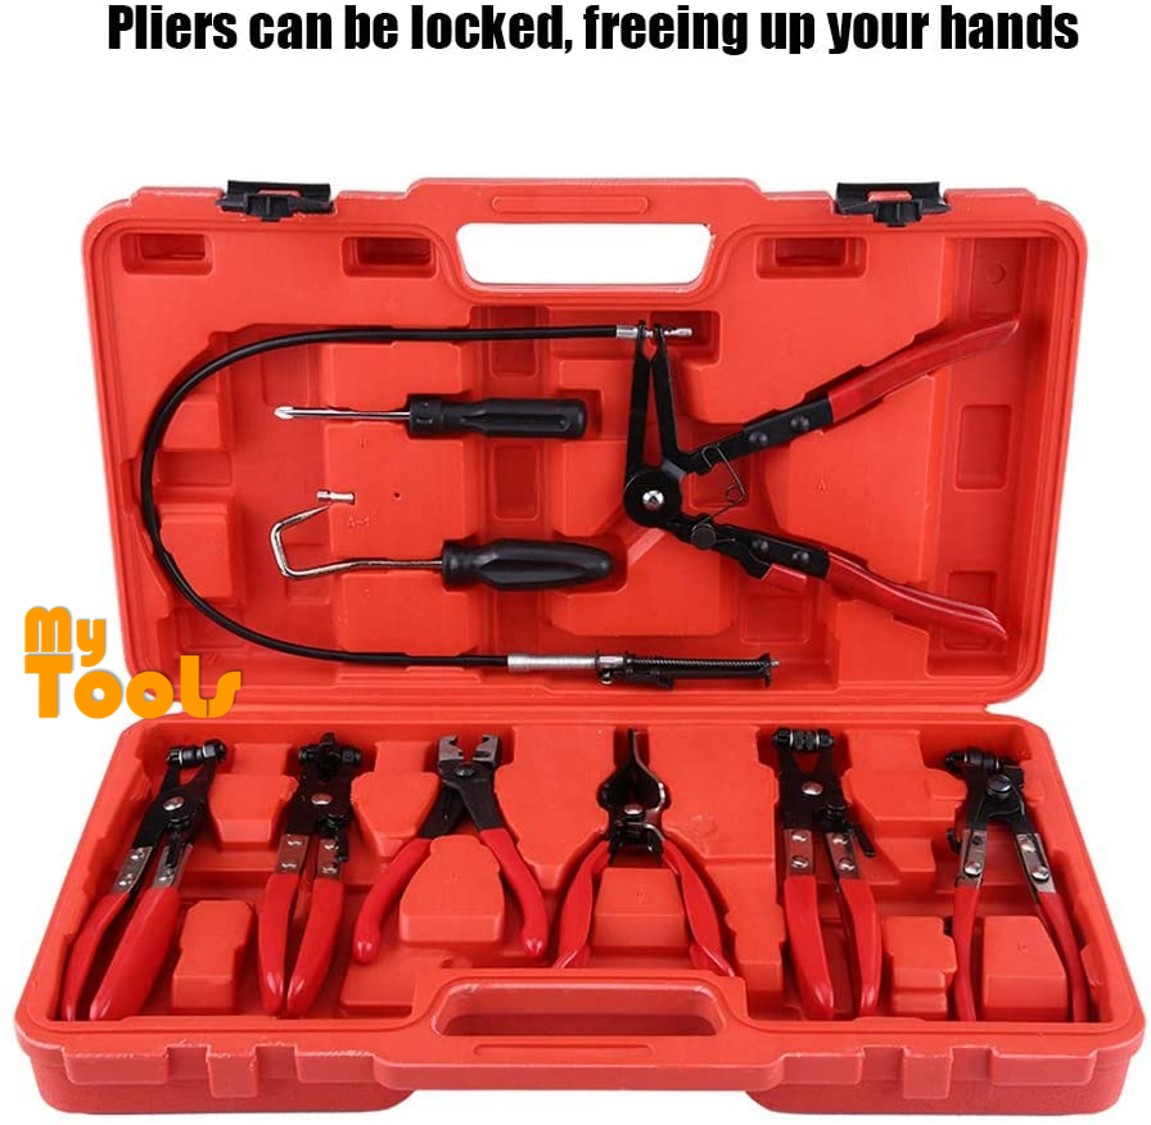 Mytools 9pcs Hose Clamp Pliers Kit Flexible Wire Long Reach Set Swivel Jaw Flat Angled Band Clip Plier with Carry Box Automotive Repair Tools